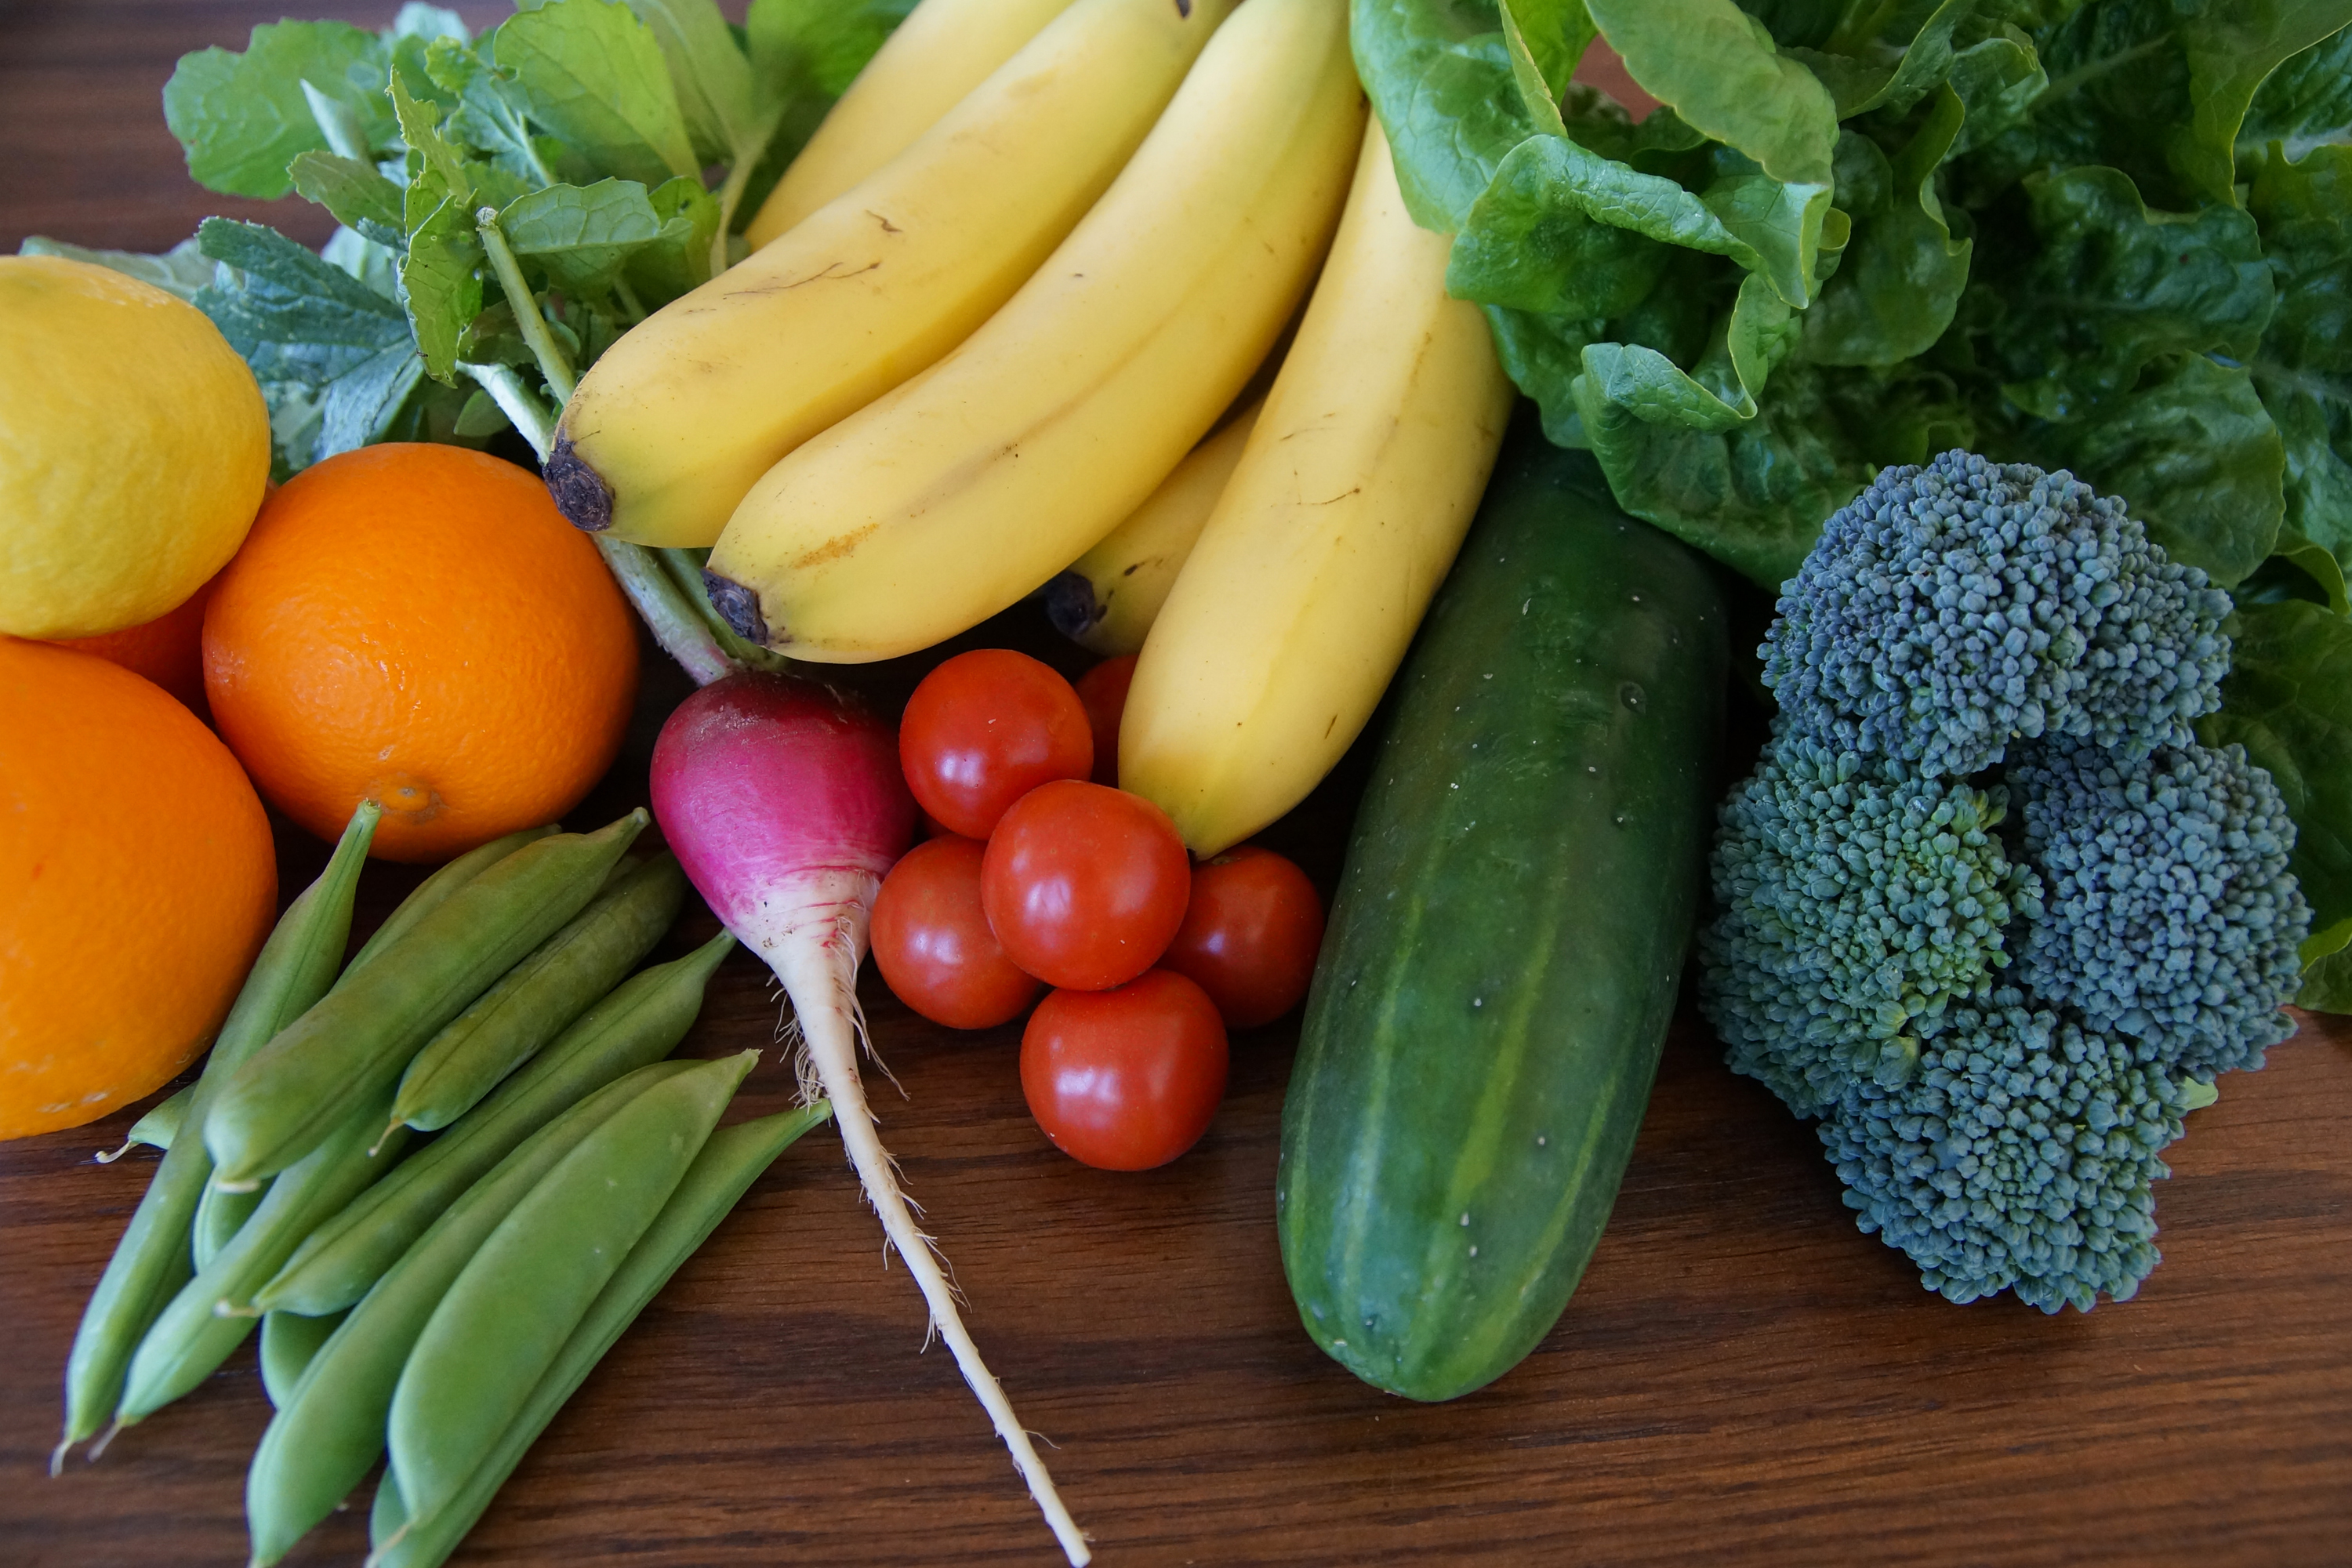 Fruits & Vegetables That Build Up the Immune System | LIVESTRONG.COM